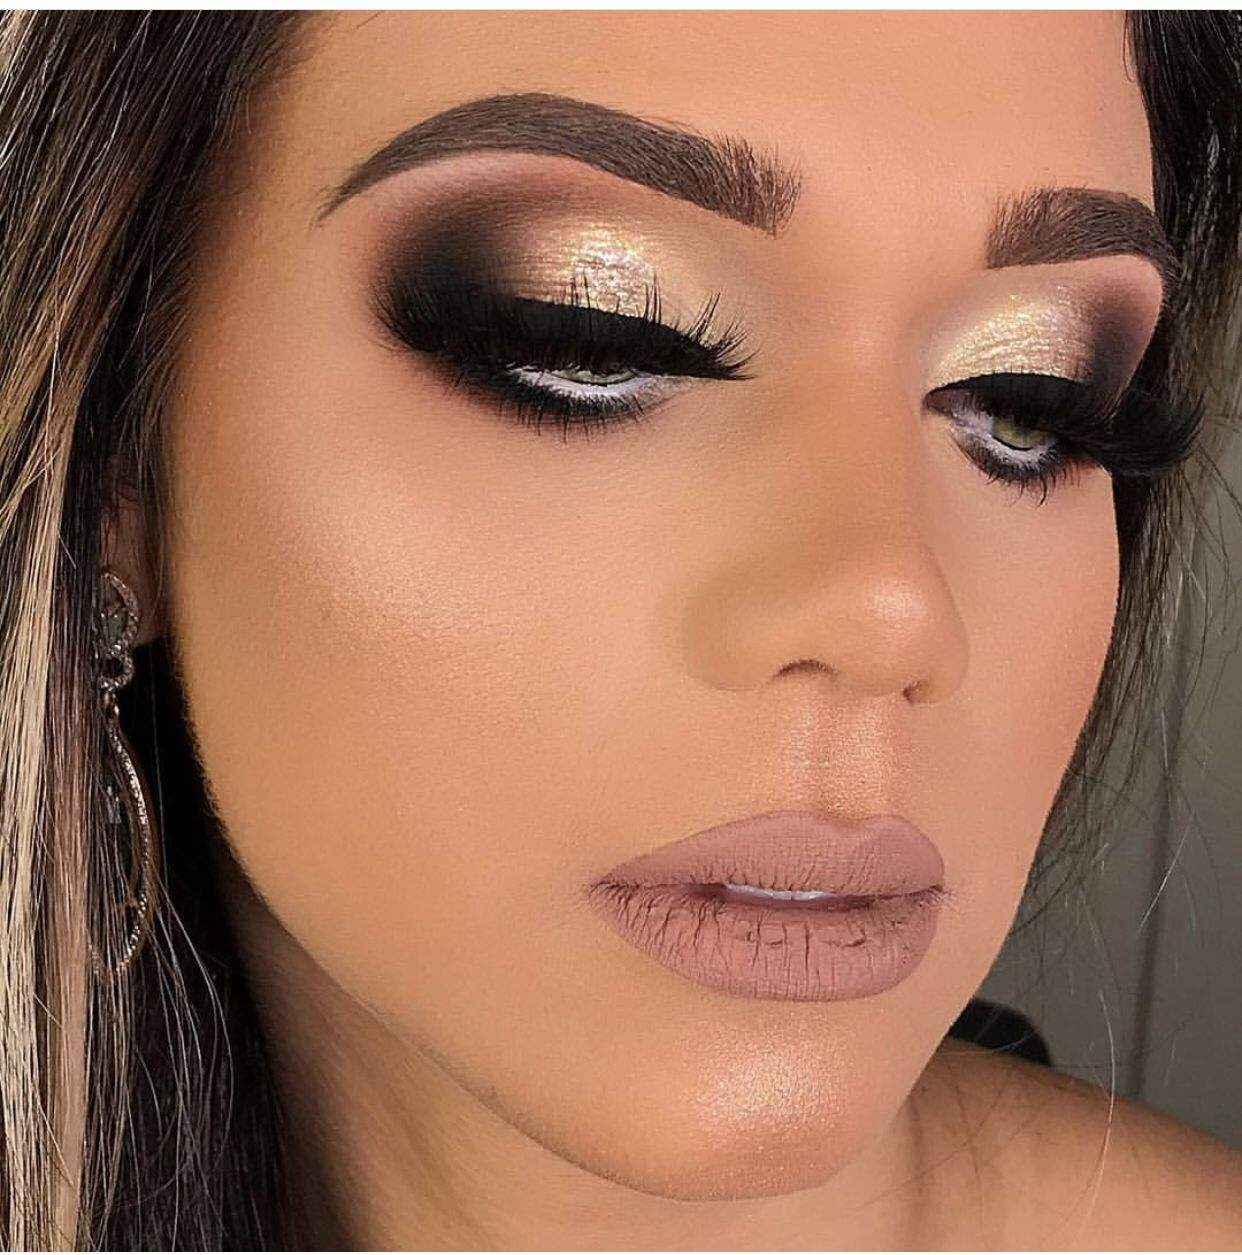 Idea by THE WAVE 🌊 on BEAUTY Bridal eye makeup, Online